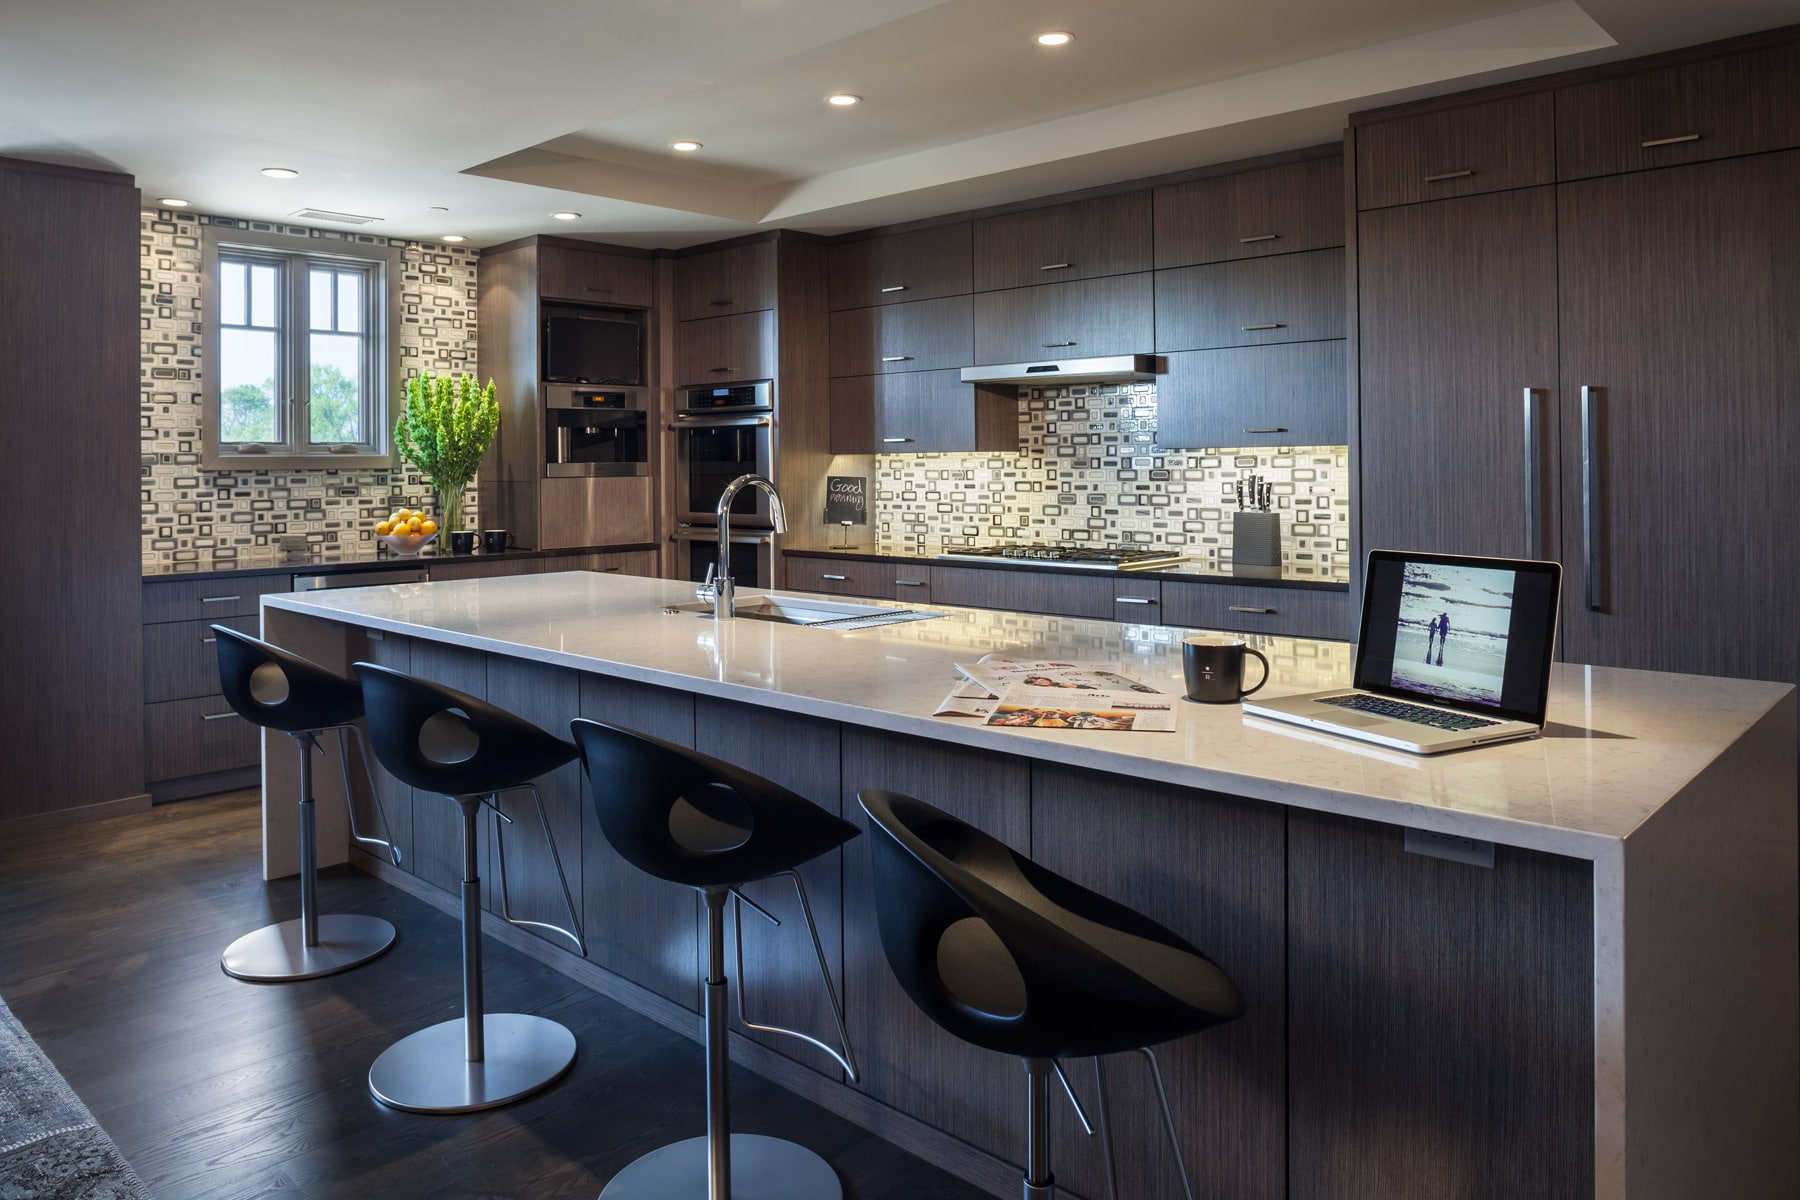 Luxury-Condominium-contemporary-Kitchen-Minneapolis-interior-designer.jpg